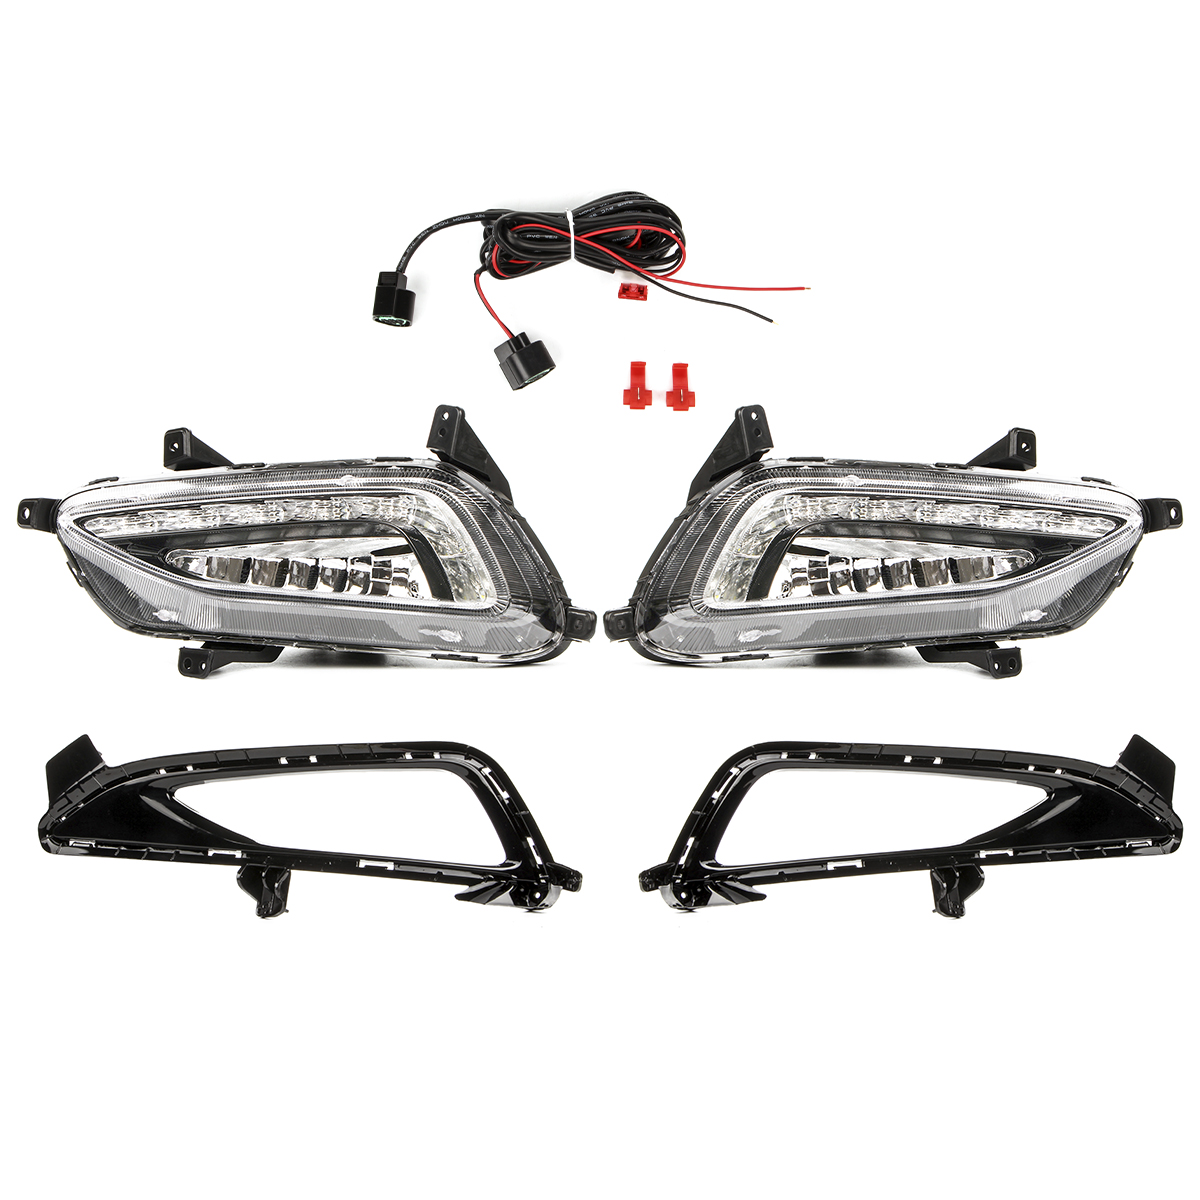 Car Drl Led Daytime Running Lights Fog Lamp Cover For